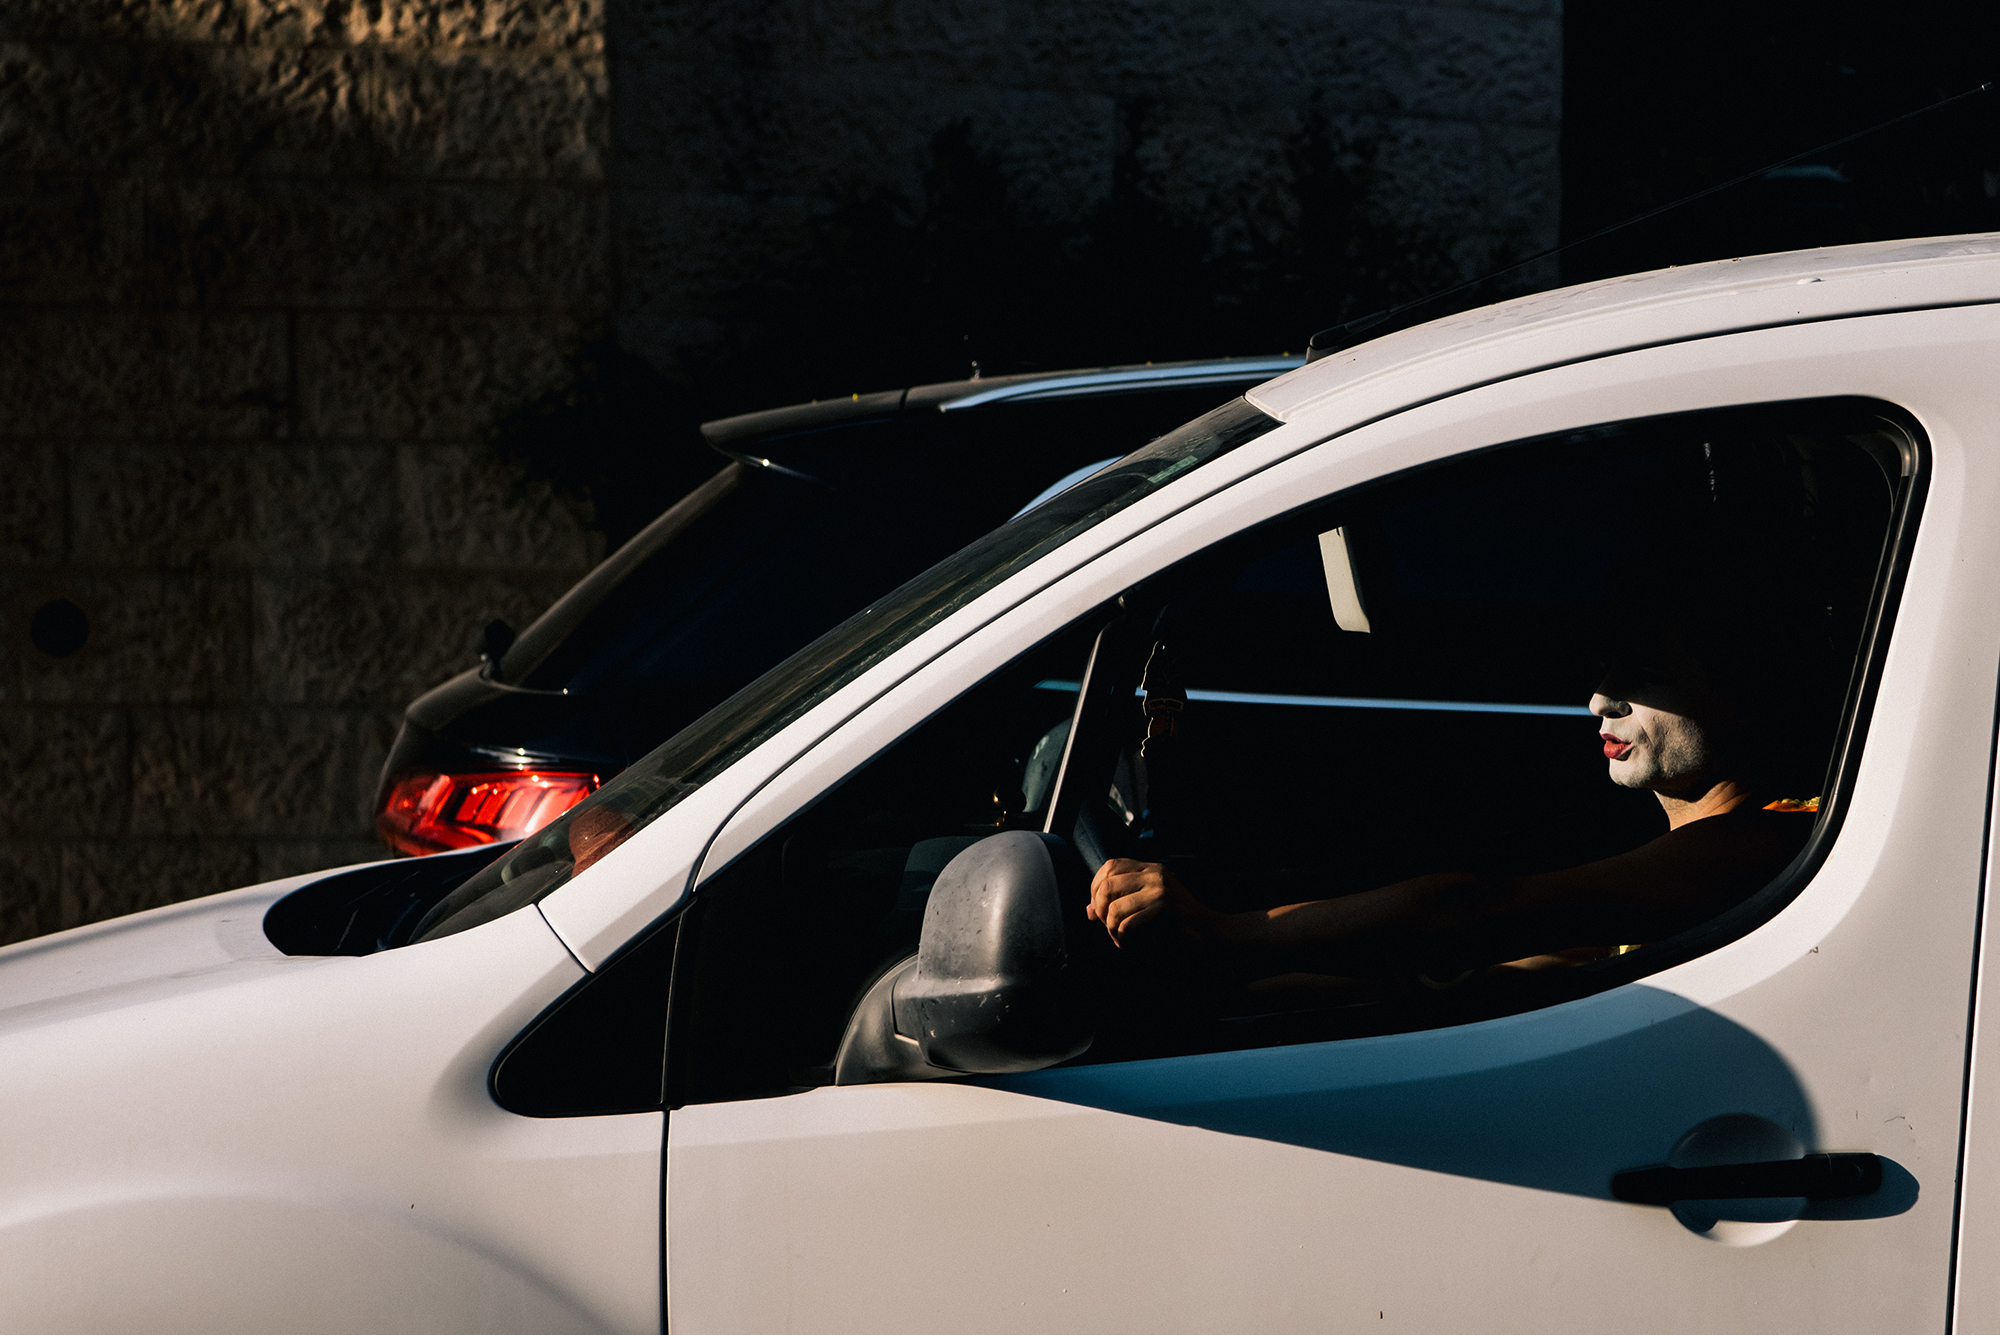 Arik Shraga photographs a man in a car his face shielded except for his very red lips and jawline painted white